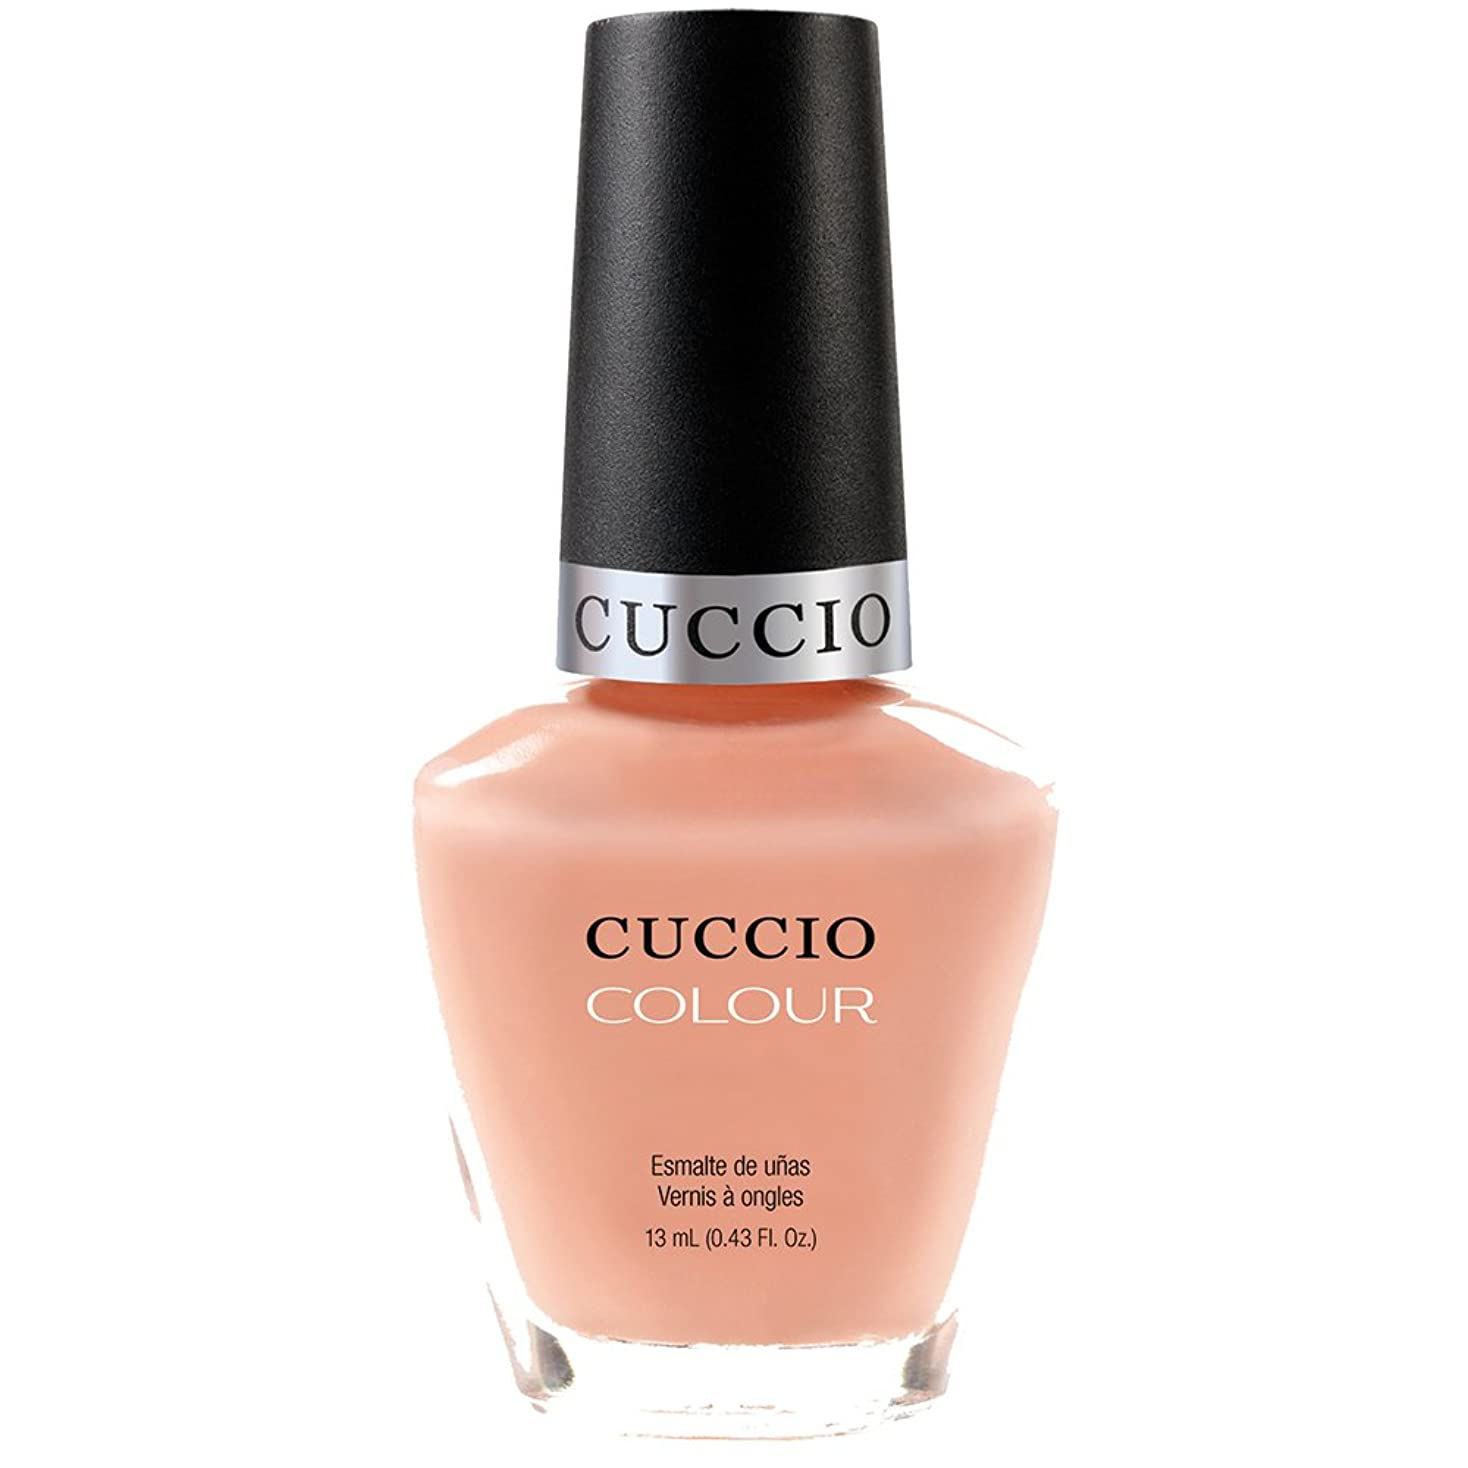 案件立法石膏Cuccio Colour Gloss Lacquer - Life's A Peach - 0.43oz / 13ml